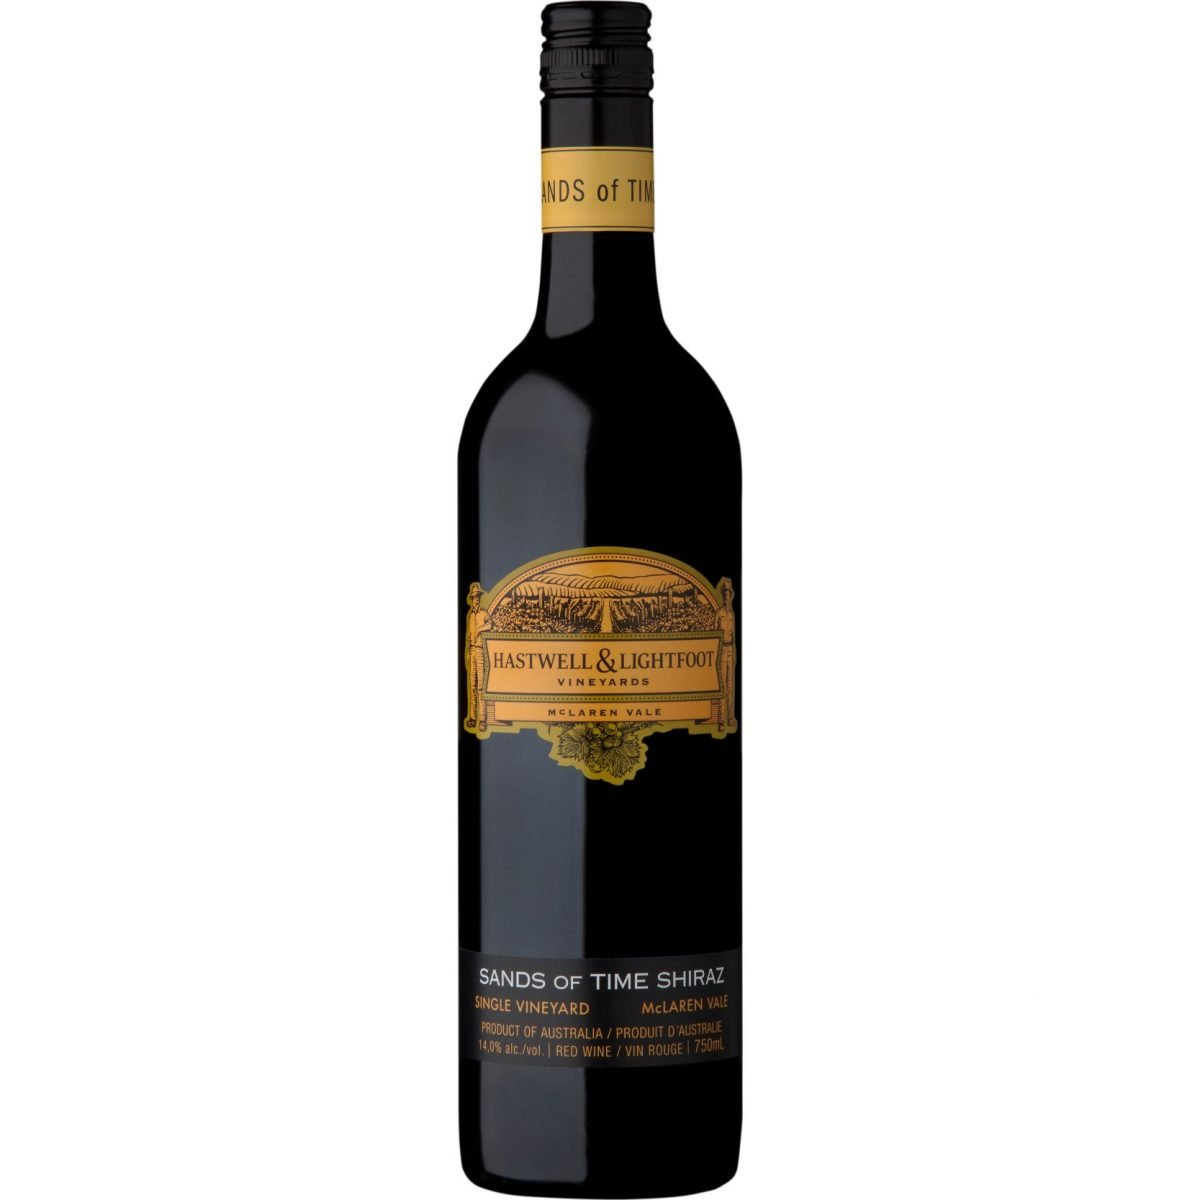 HASTWELL & LIGHTFOOT   SANDS OF TIME   SHIRAZ   2016